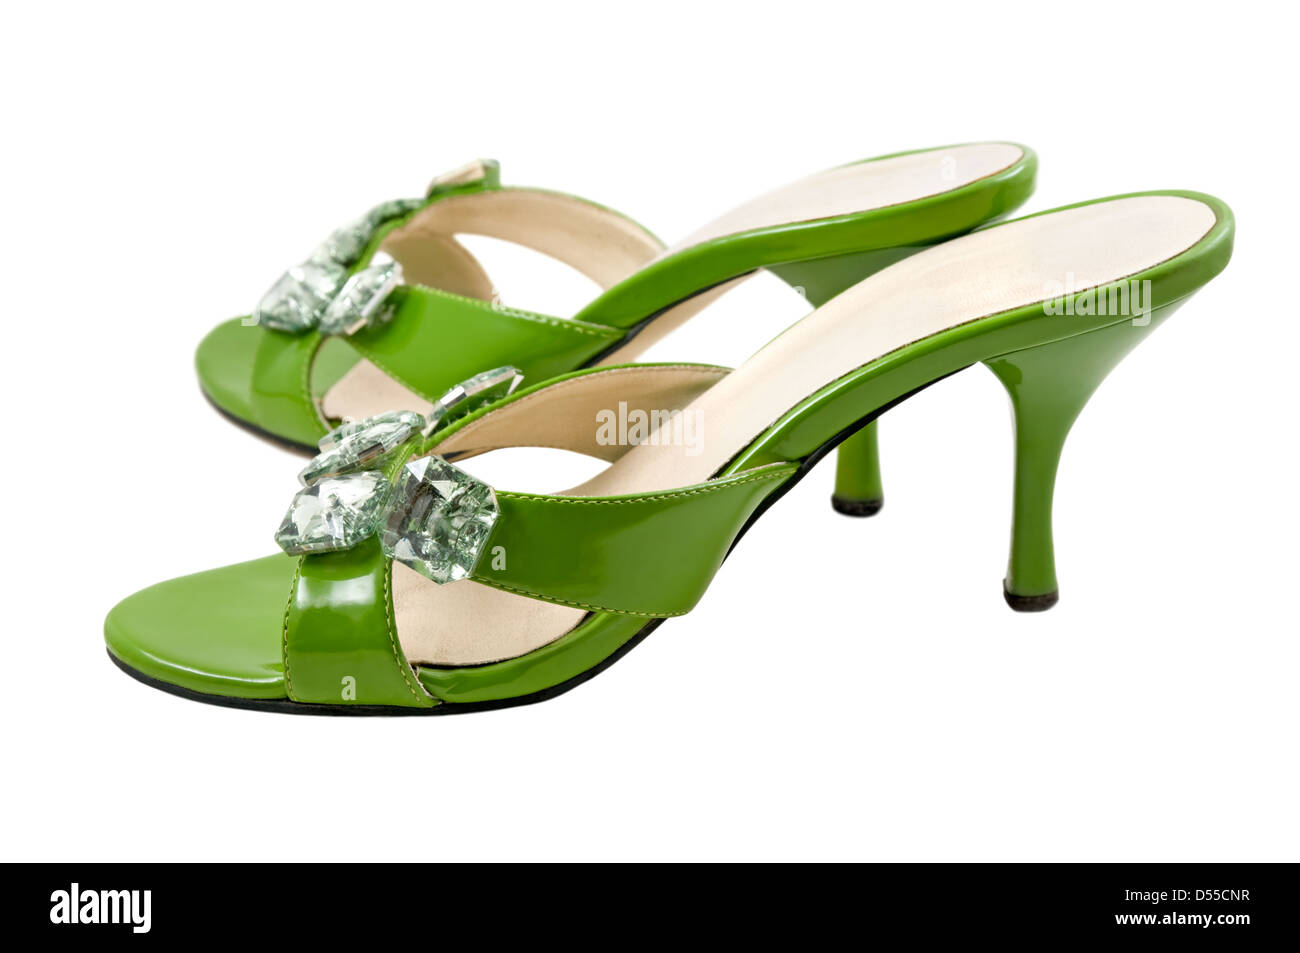 The green shoes are photographed on the white background - Stock Image